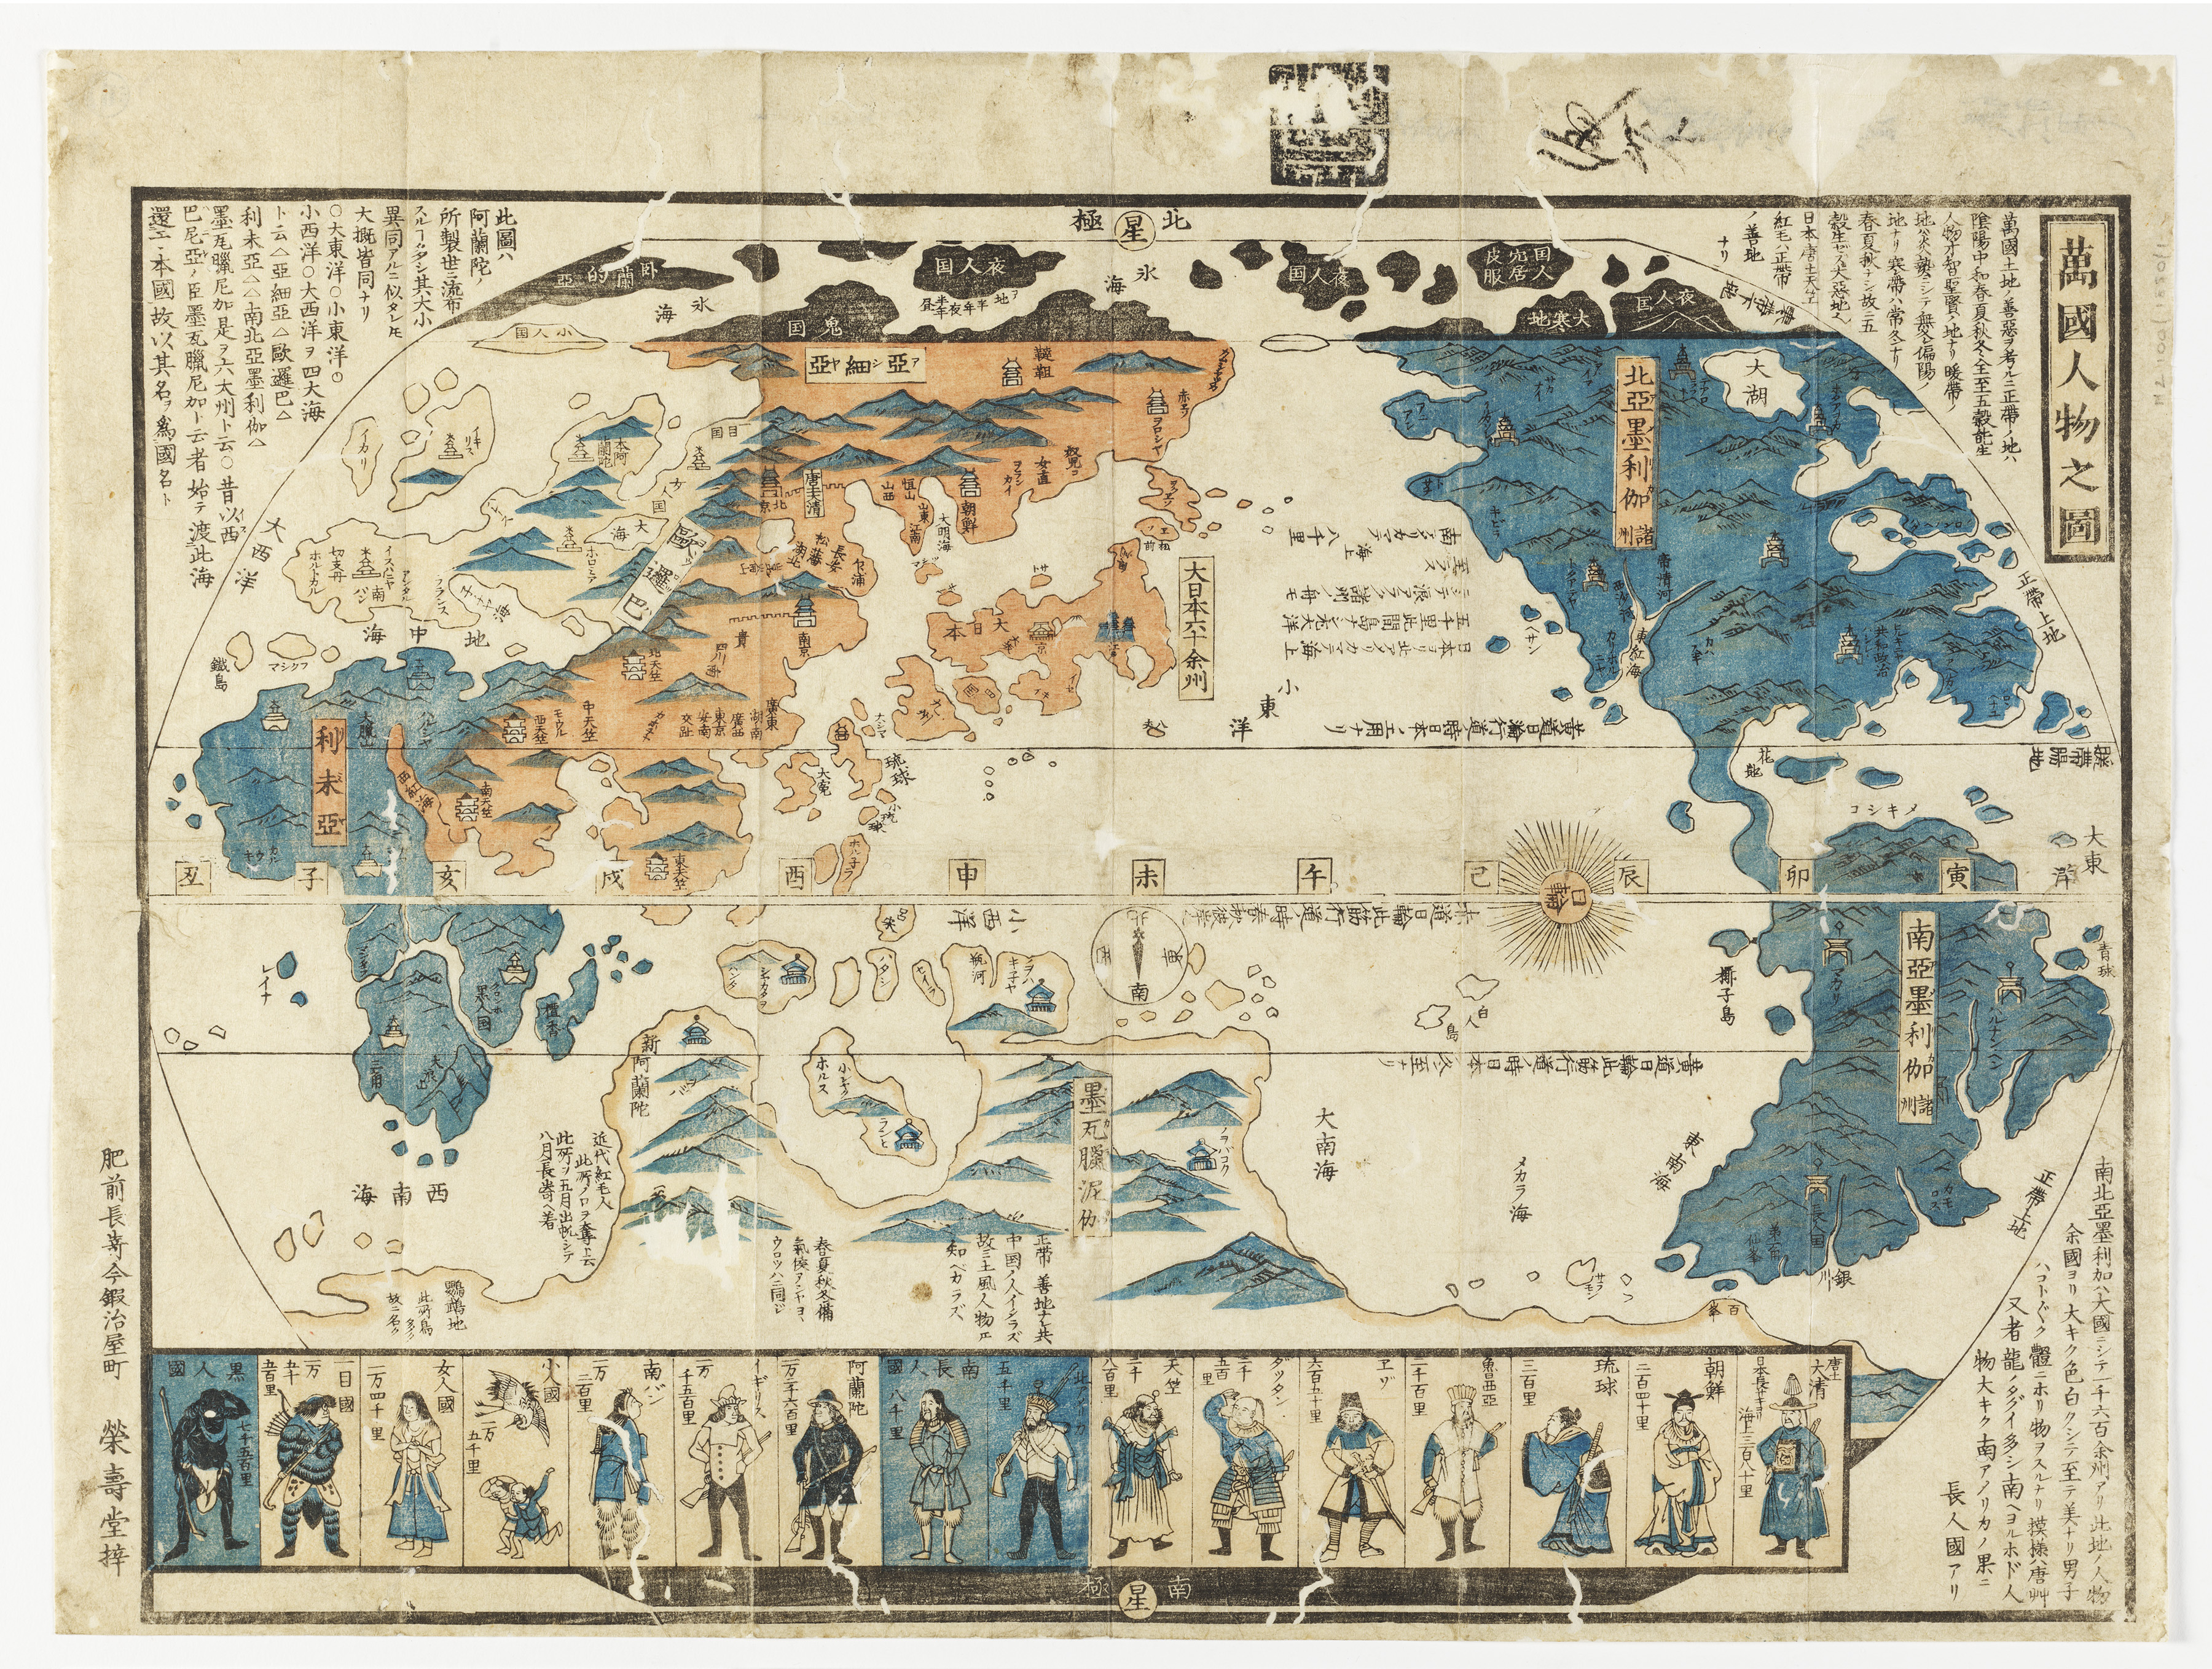 World map showing illustrations of people of the world